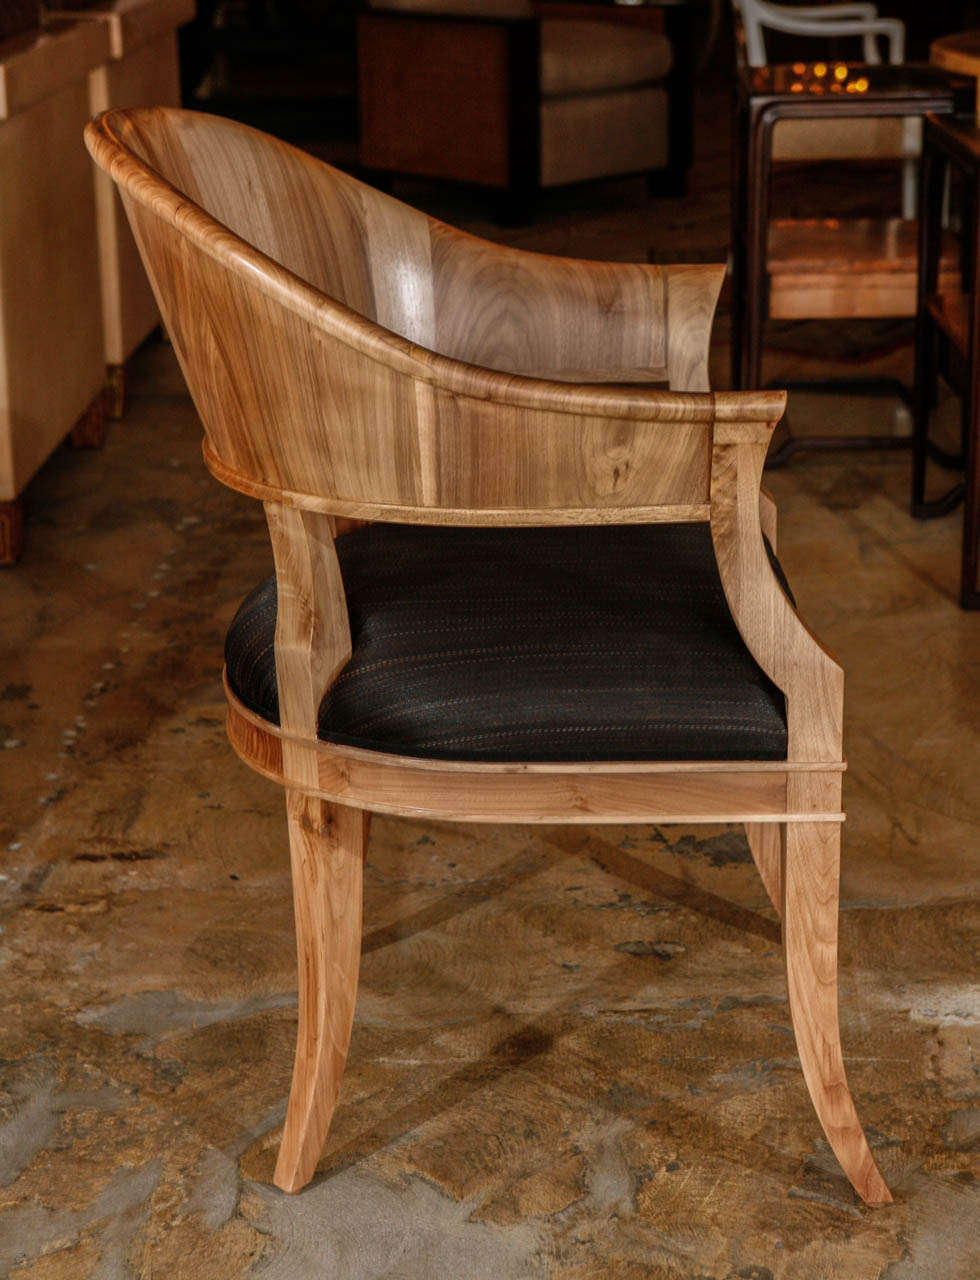 Bleached Walnut French Art Deco Style Chairs In Excellent Condition For Sale In Los Angeles, CA